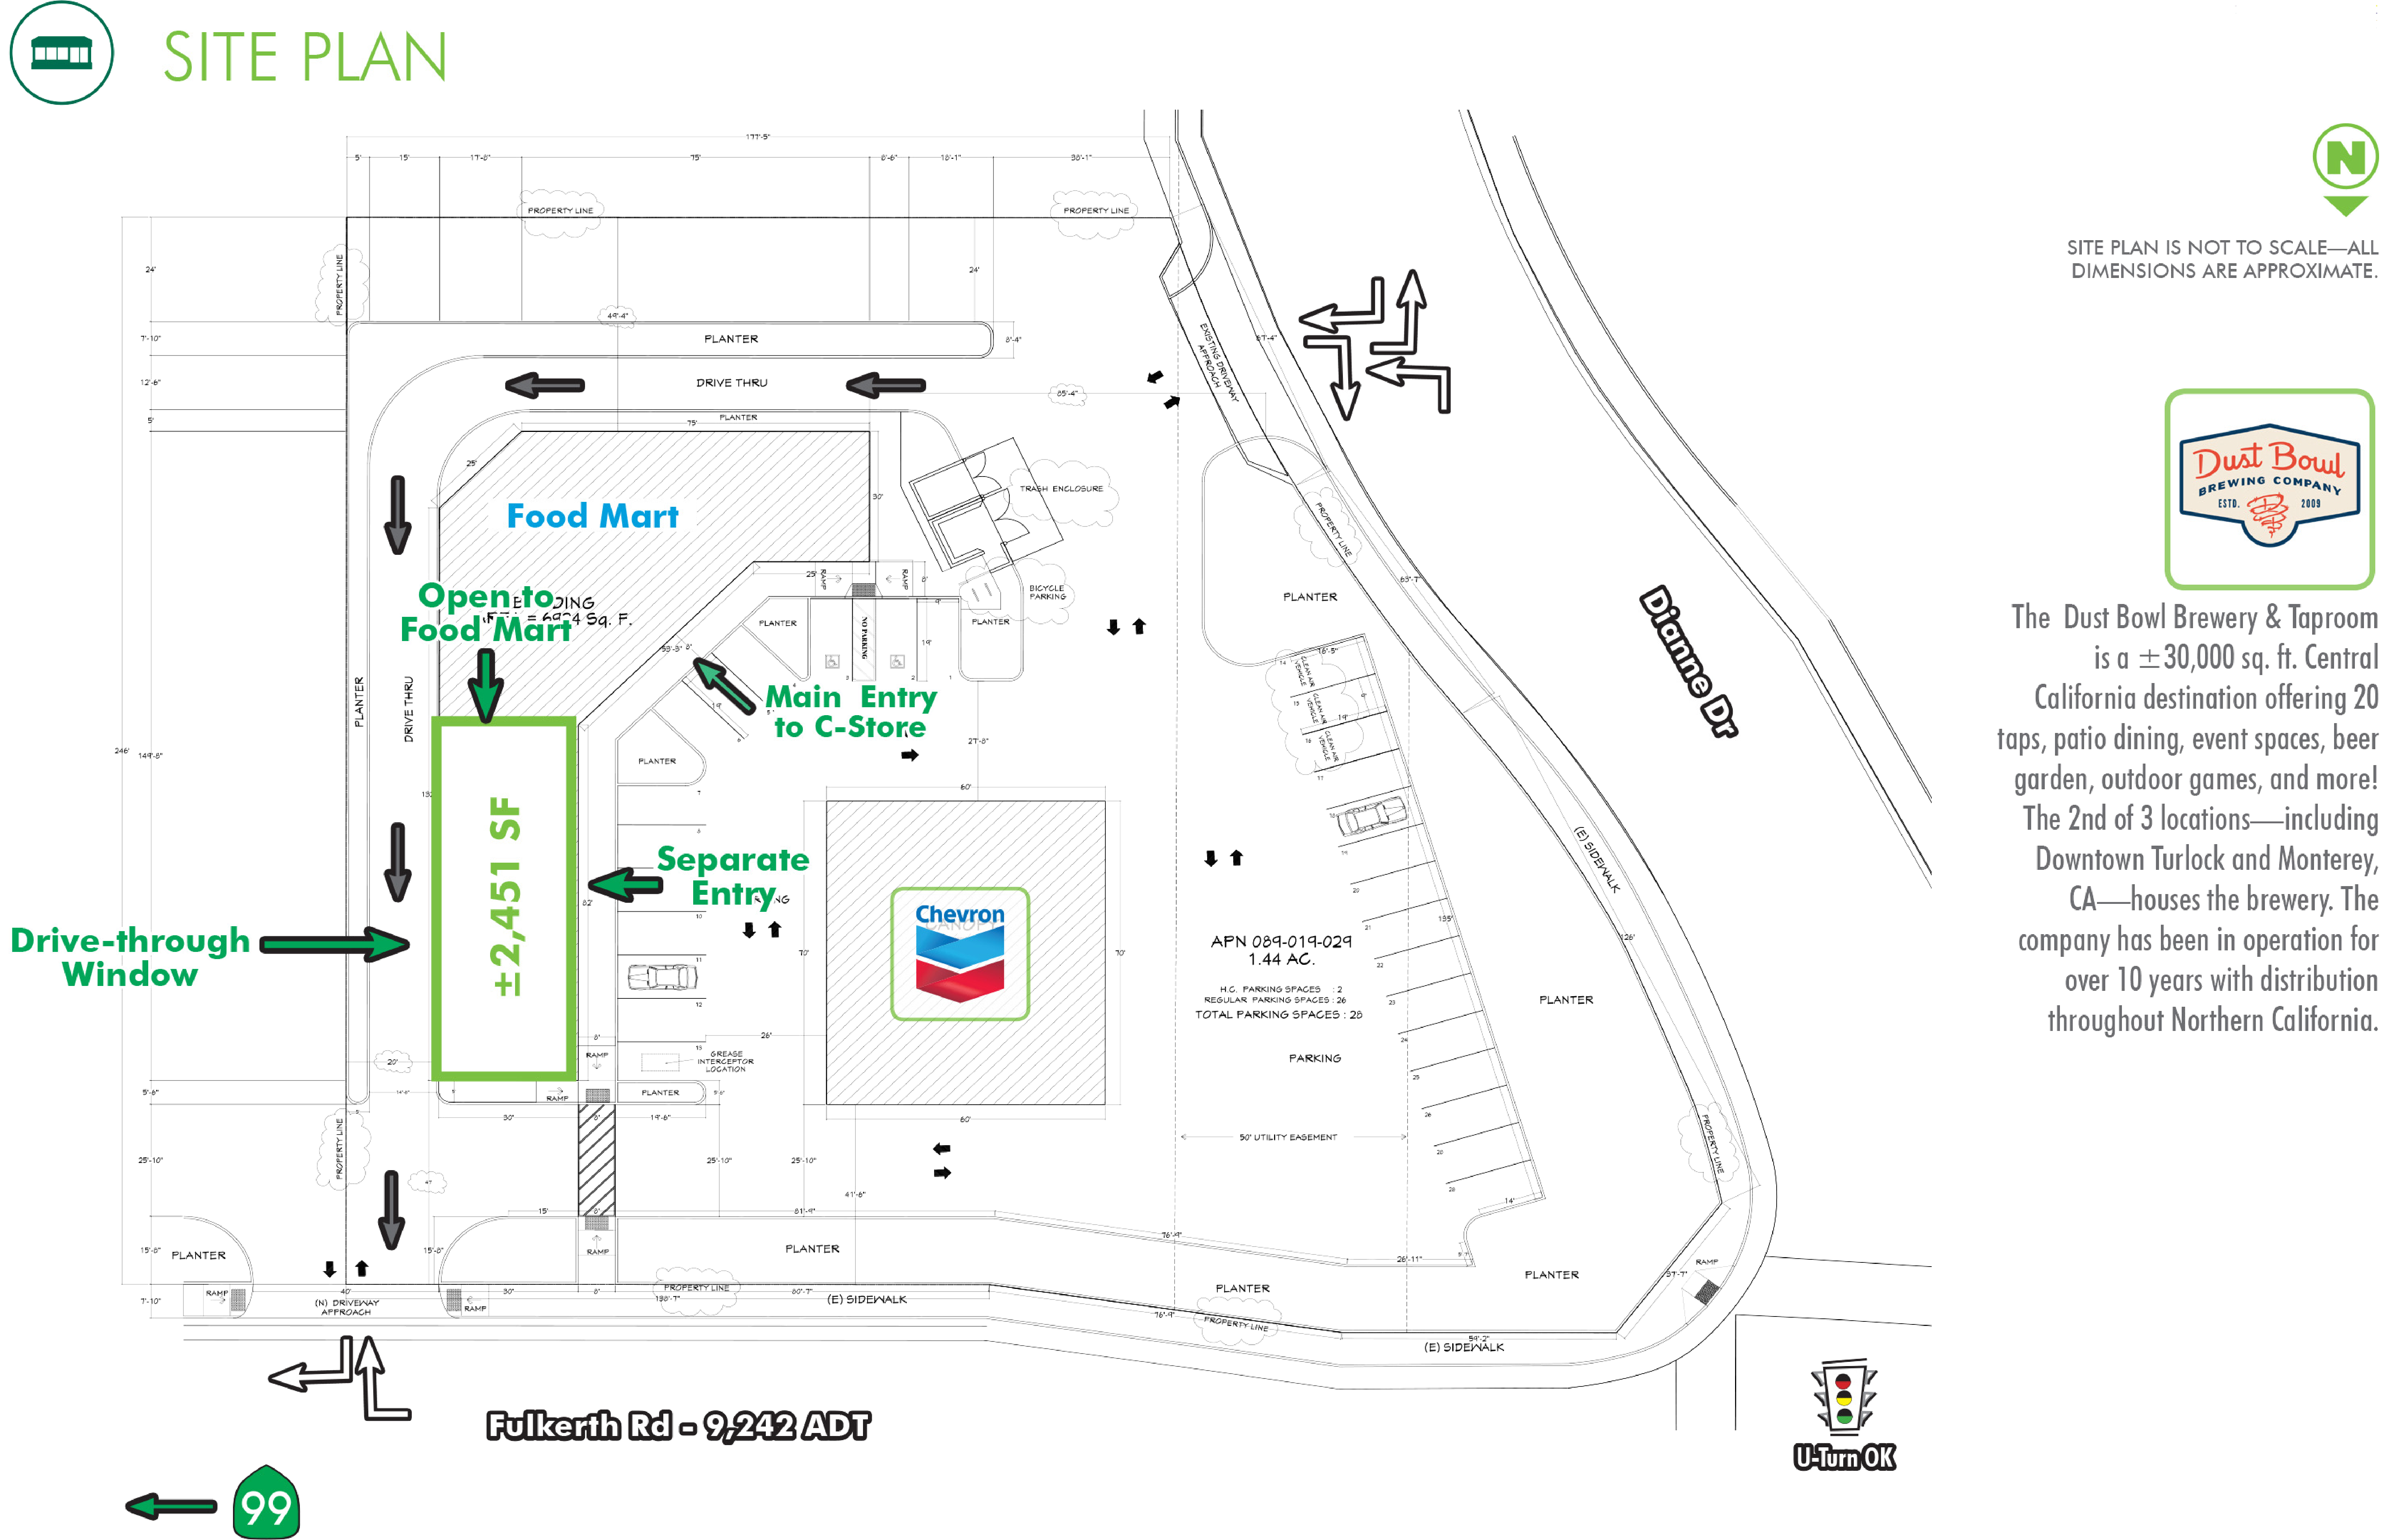 Fast Food-Fast Casual Space: site plan